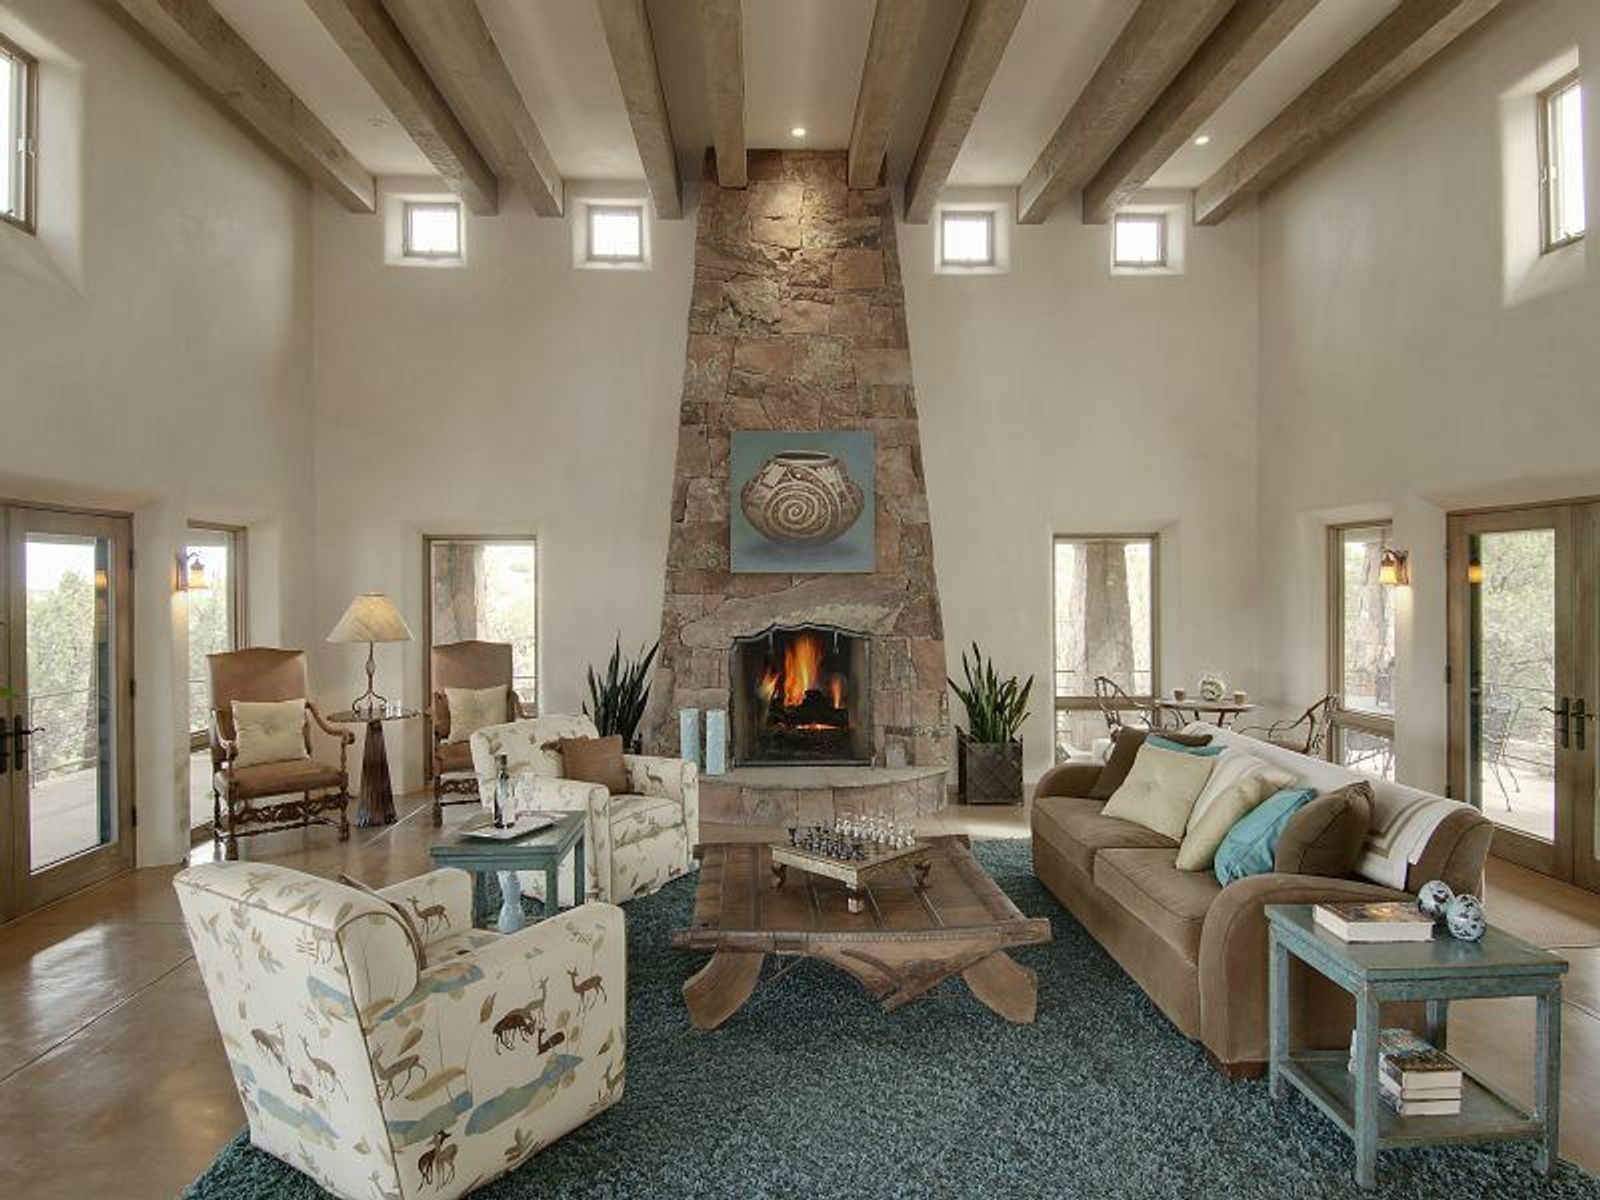 22 N. Vuelta Herradura, Santa Fe NM Single Family Home - Santa Fe Real Estate